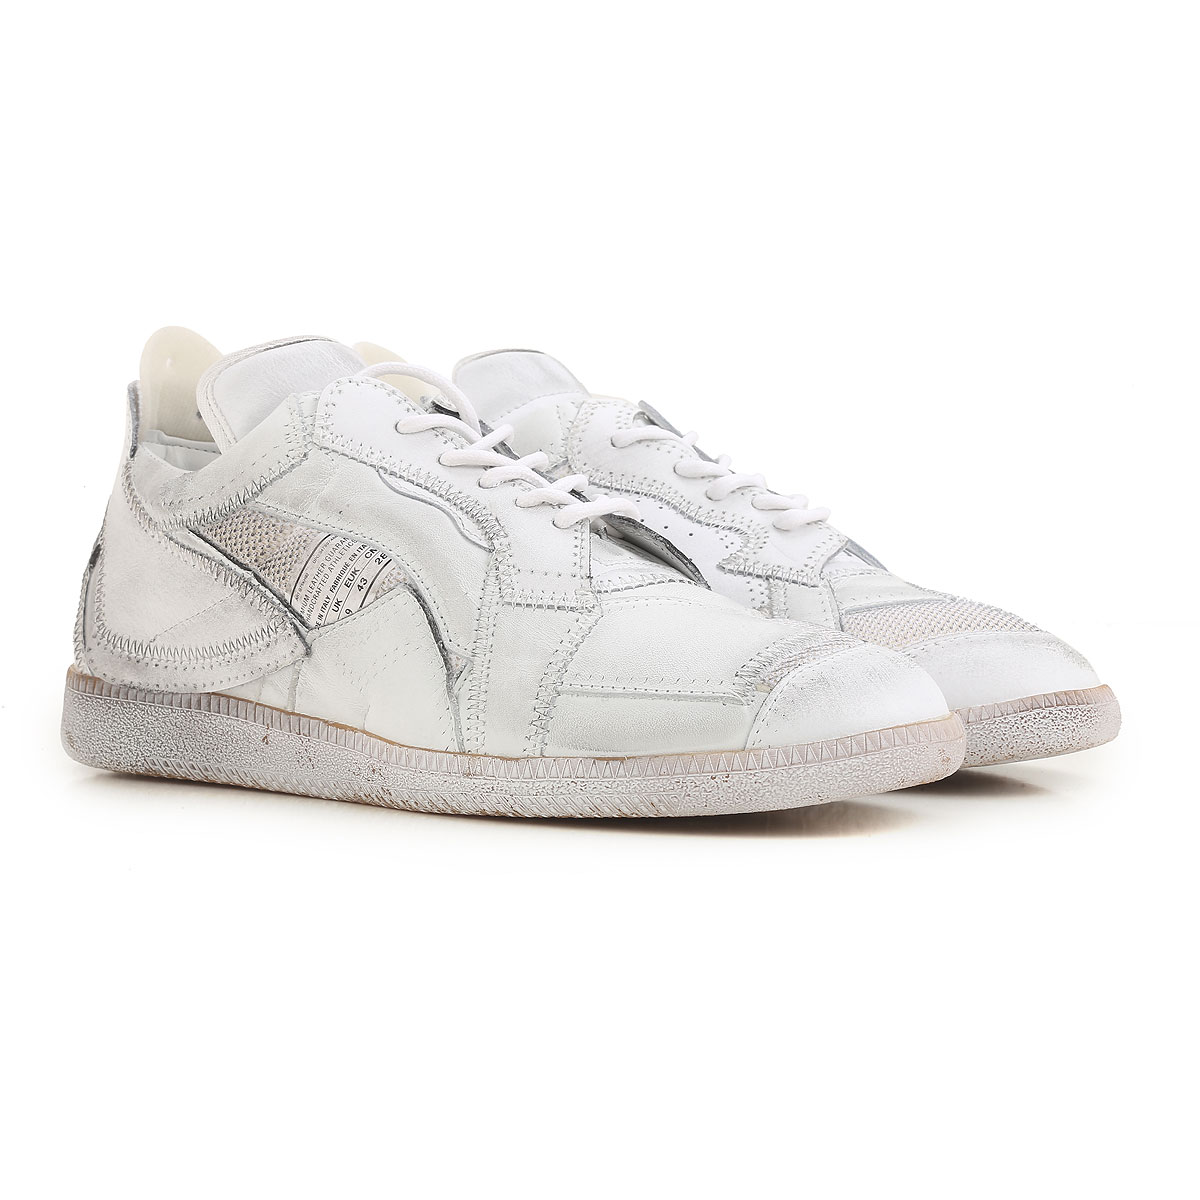 Sneakers for Men On Sale in Outlet, White, Leather, 2017, 10.5 Maison Martin Margiela